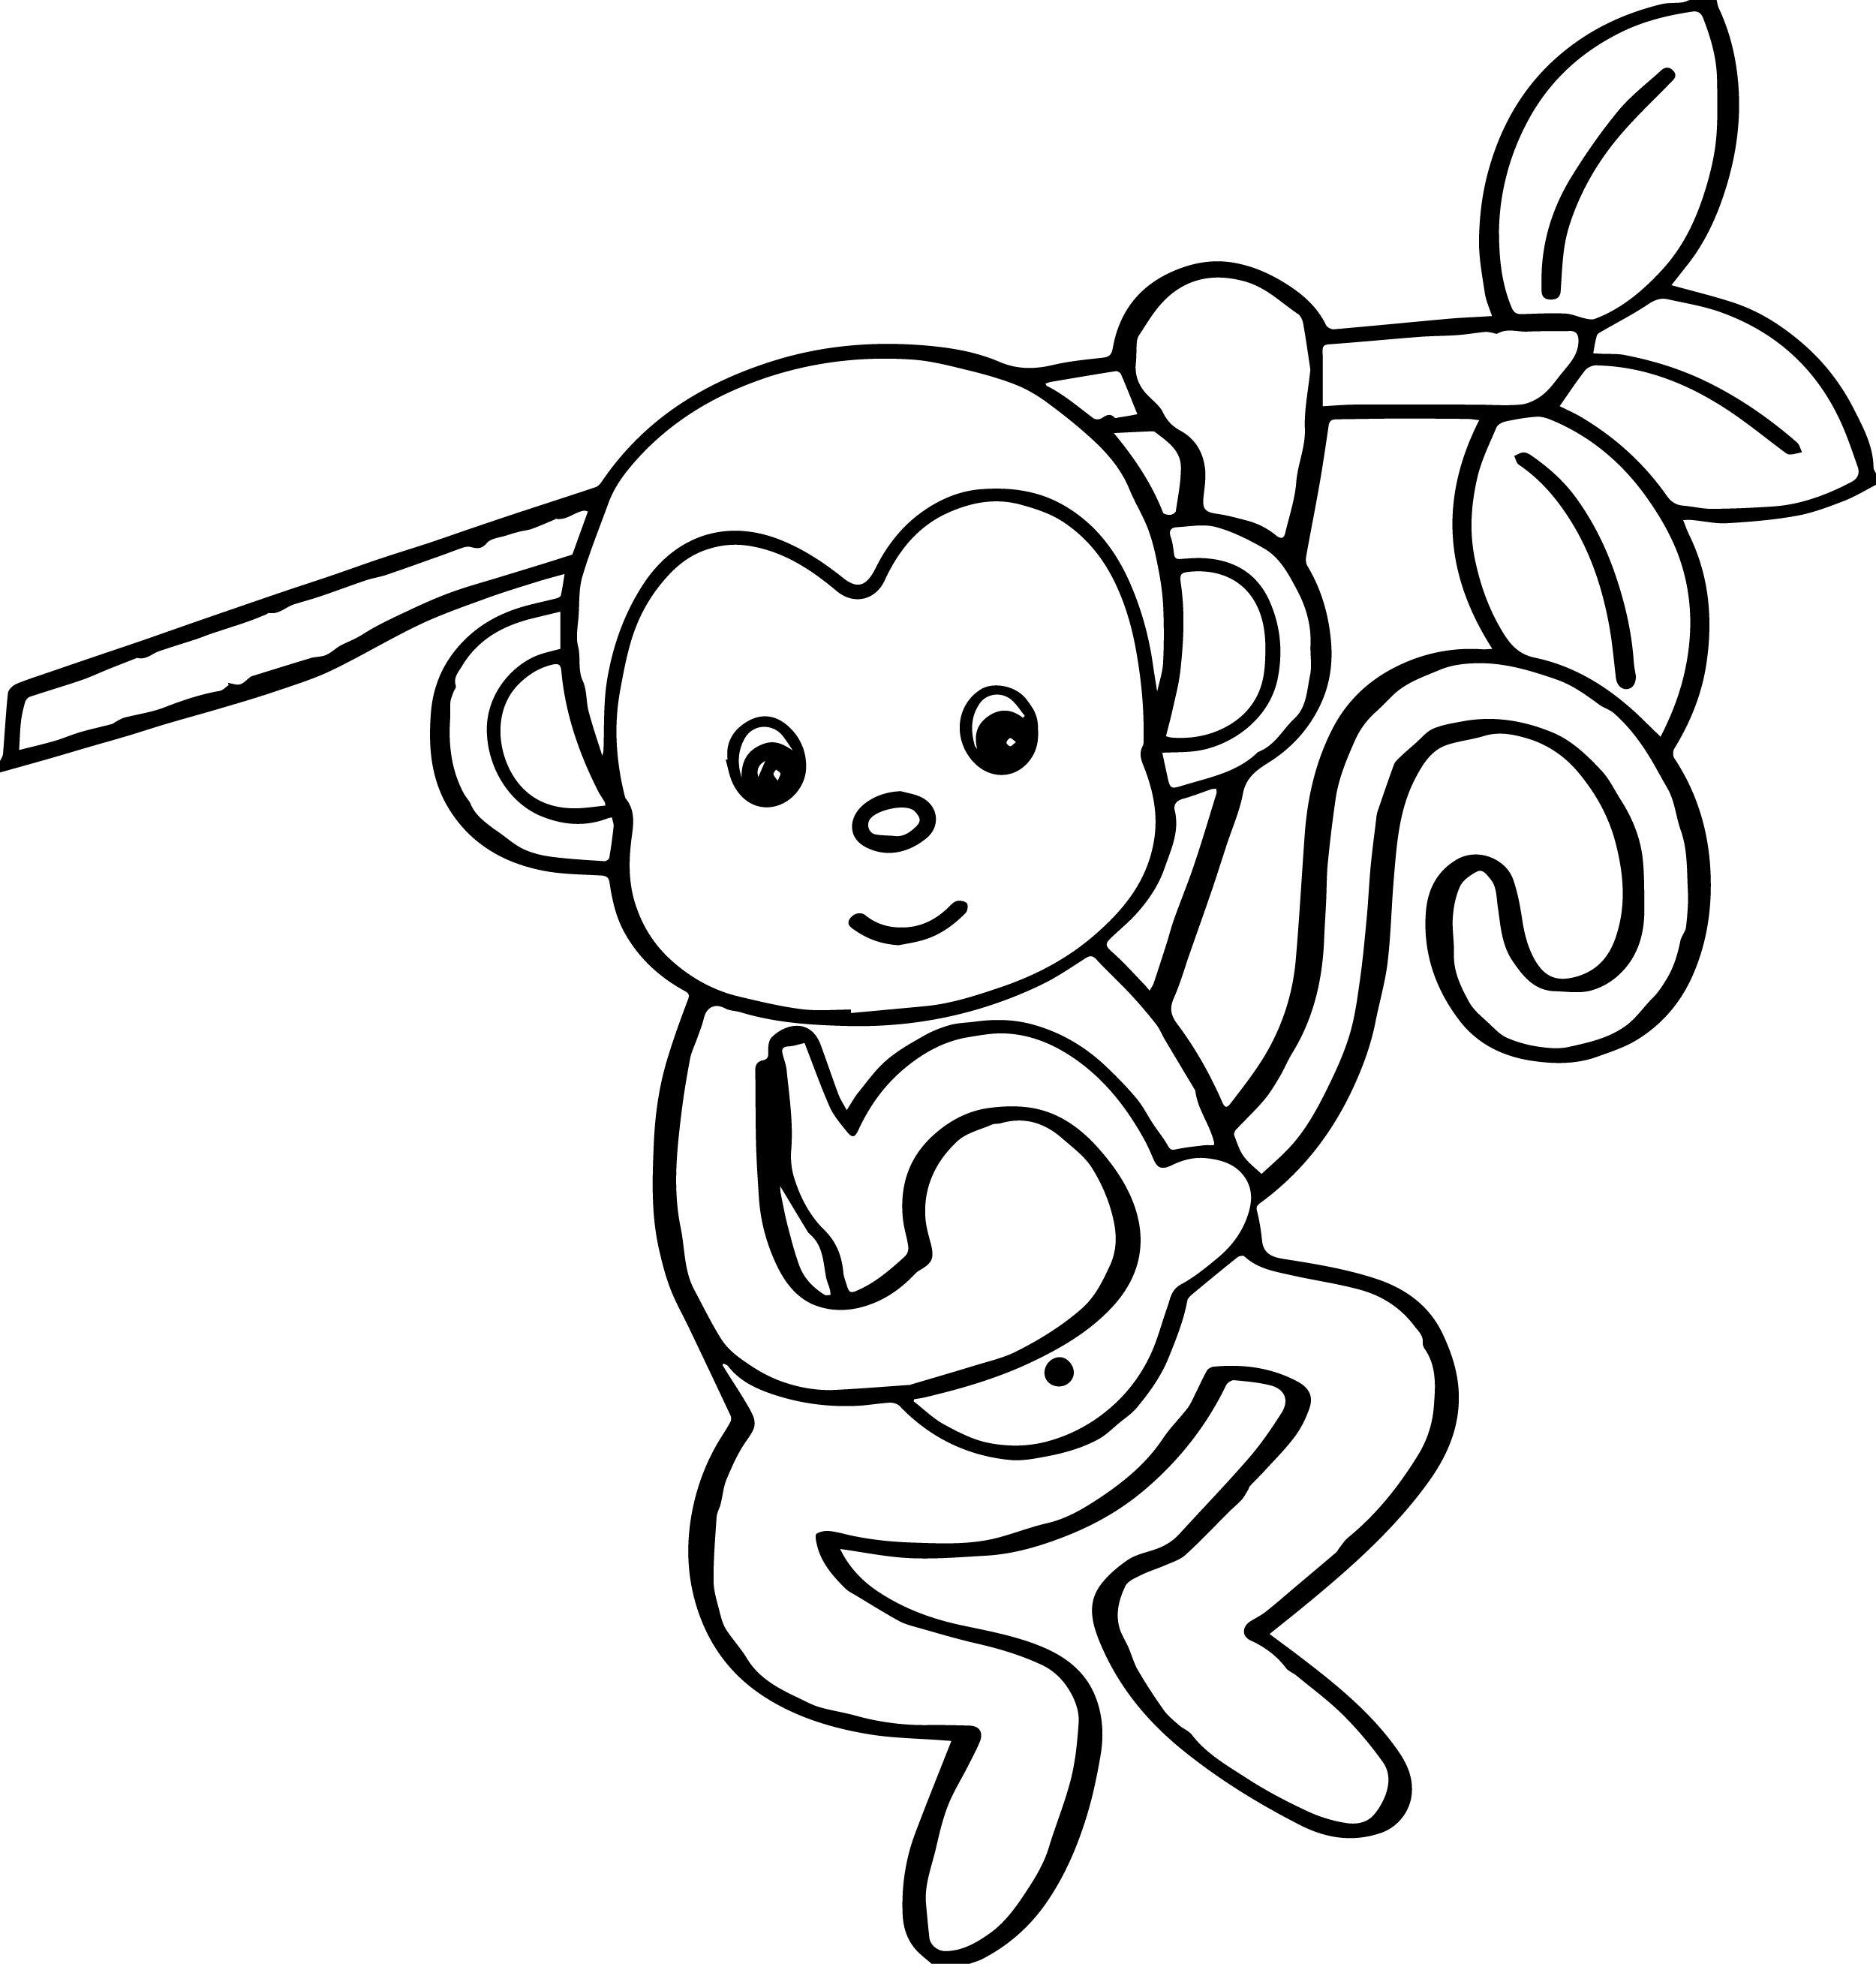 Image Result For Spider Monkey Drawing Cute